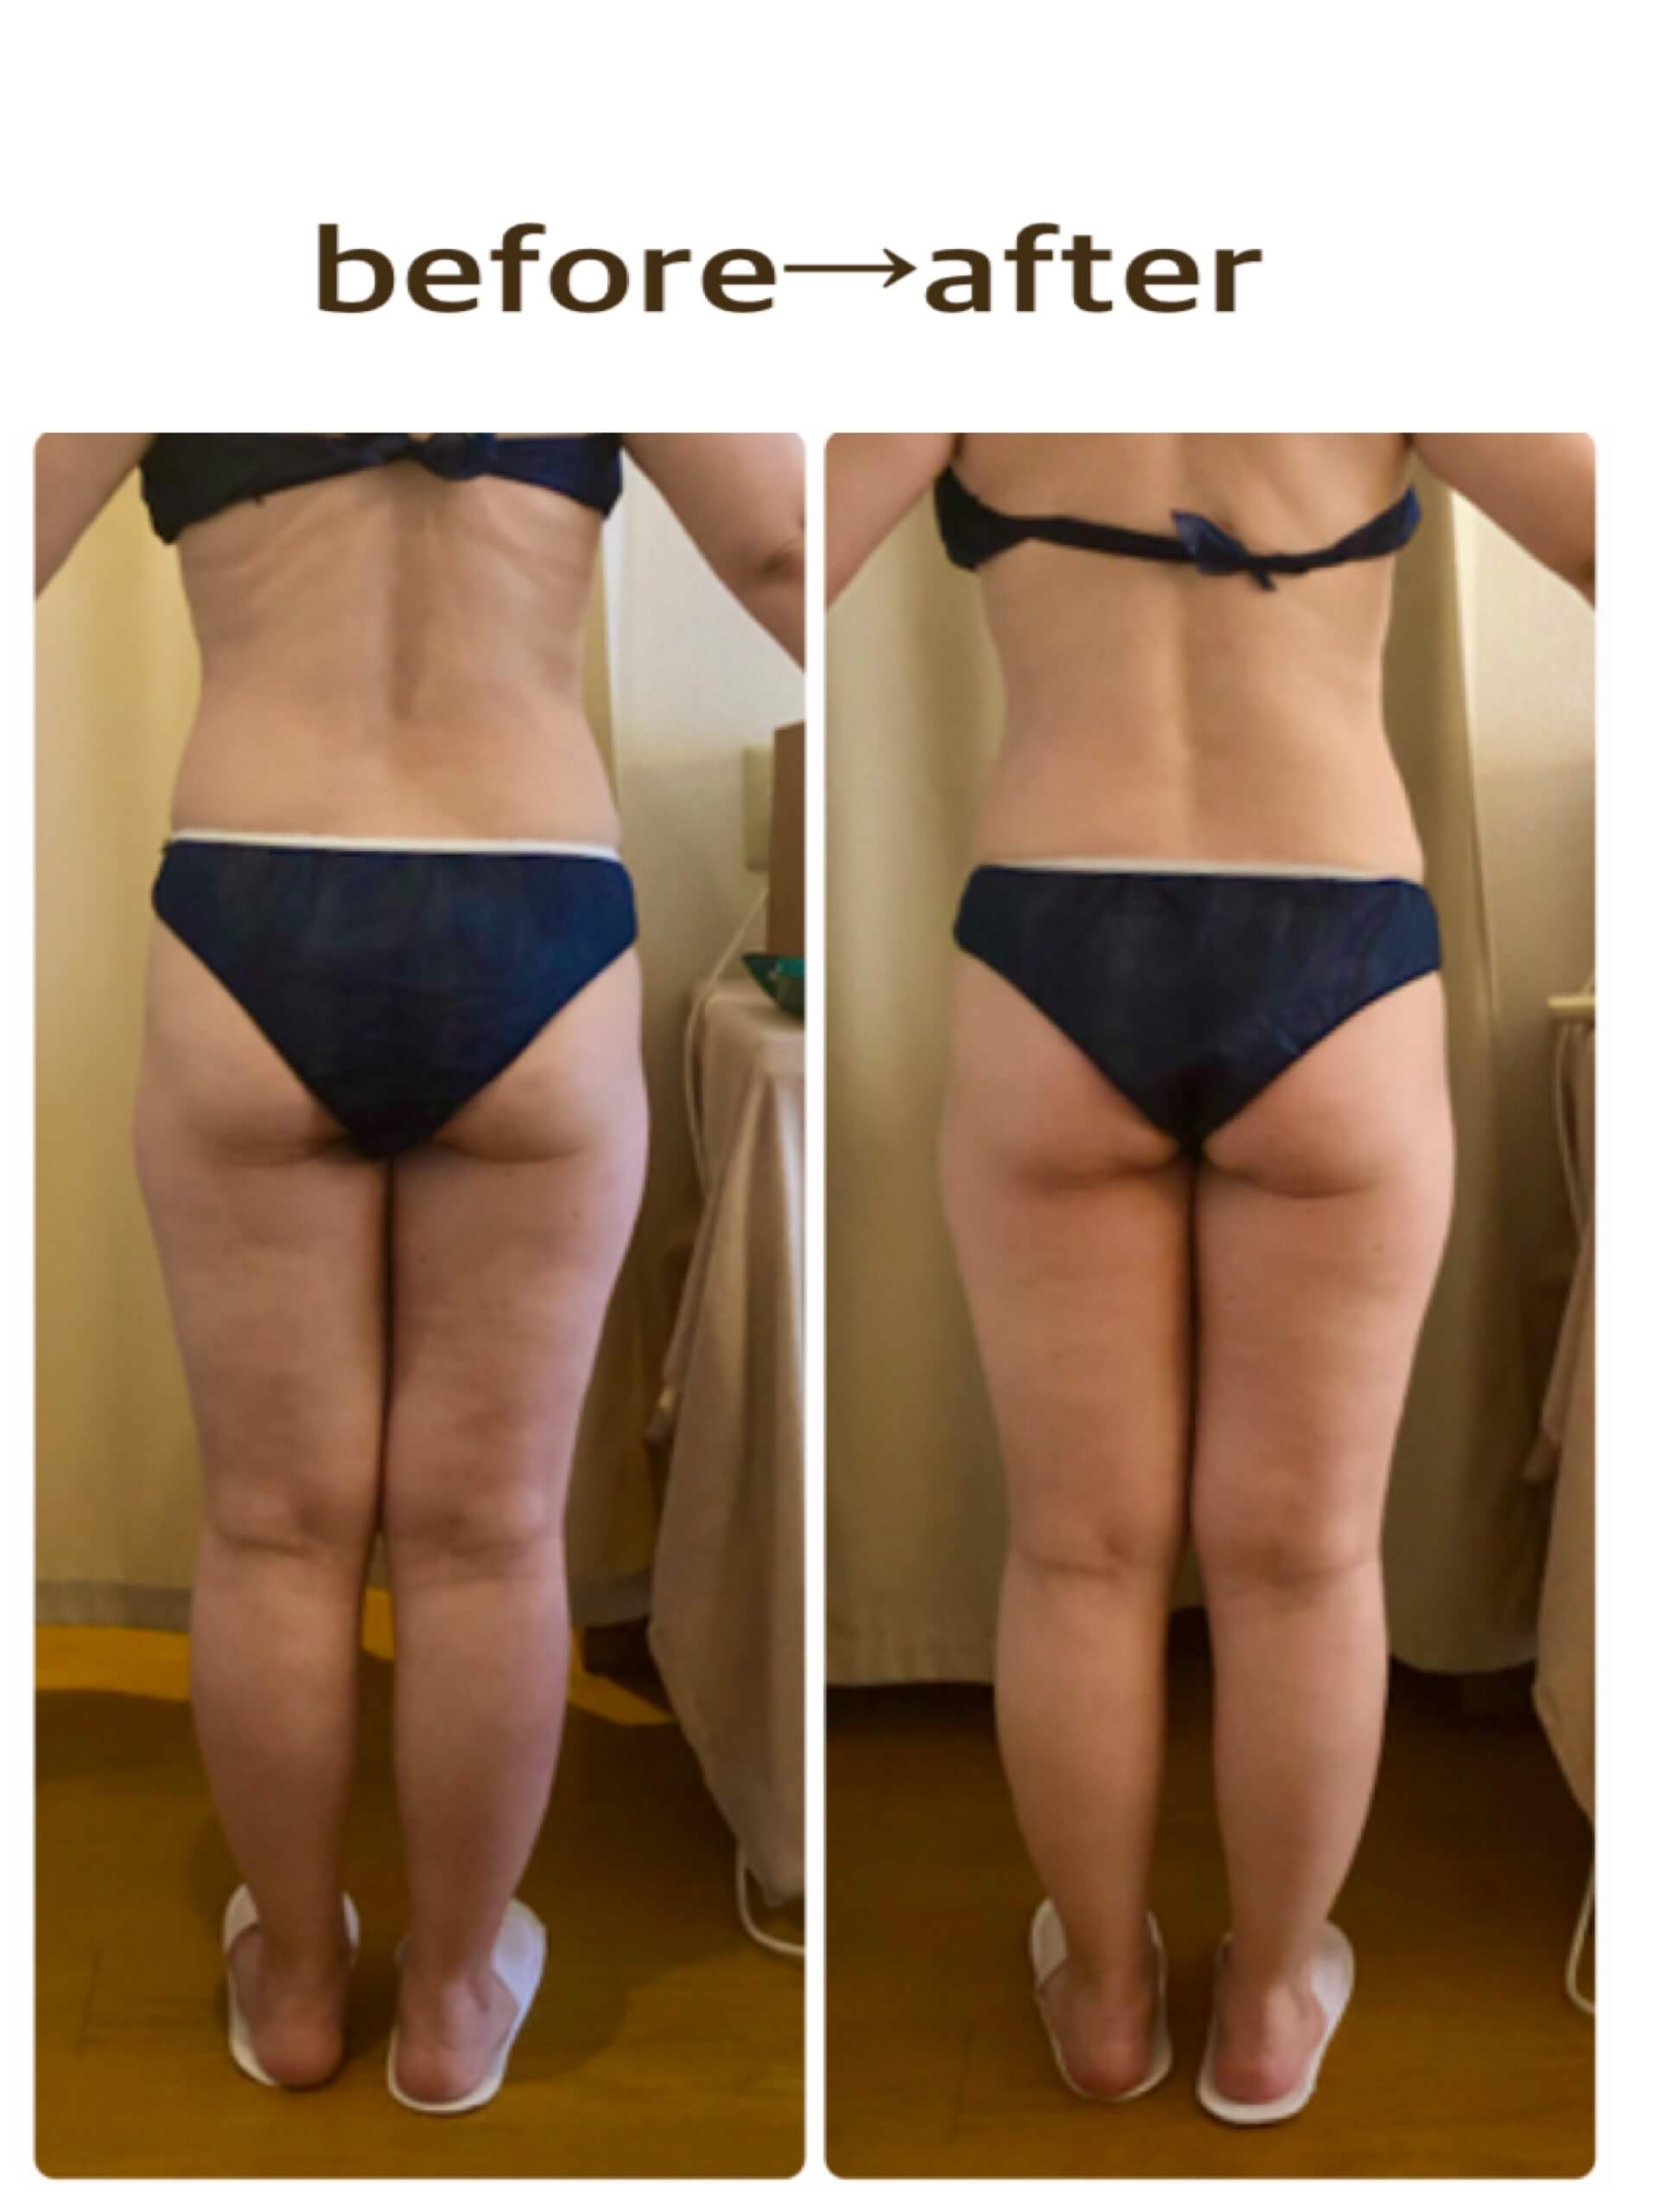 before-after(detox)